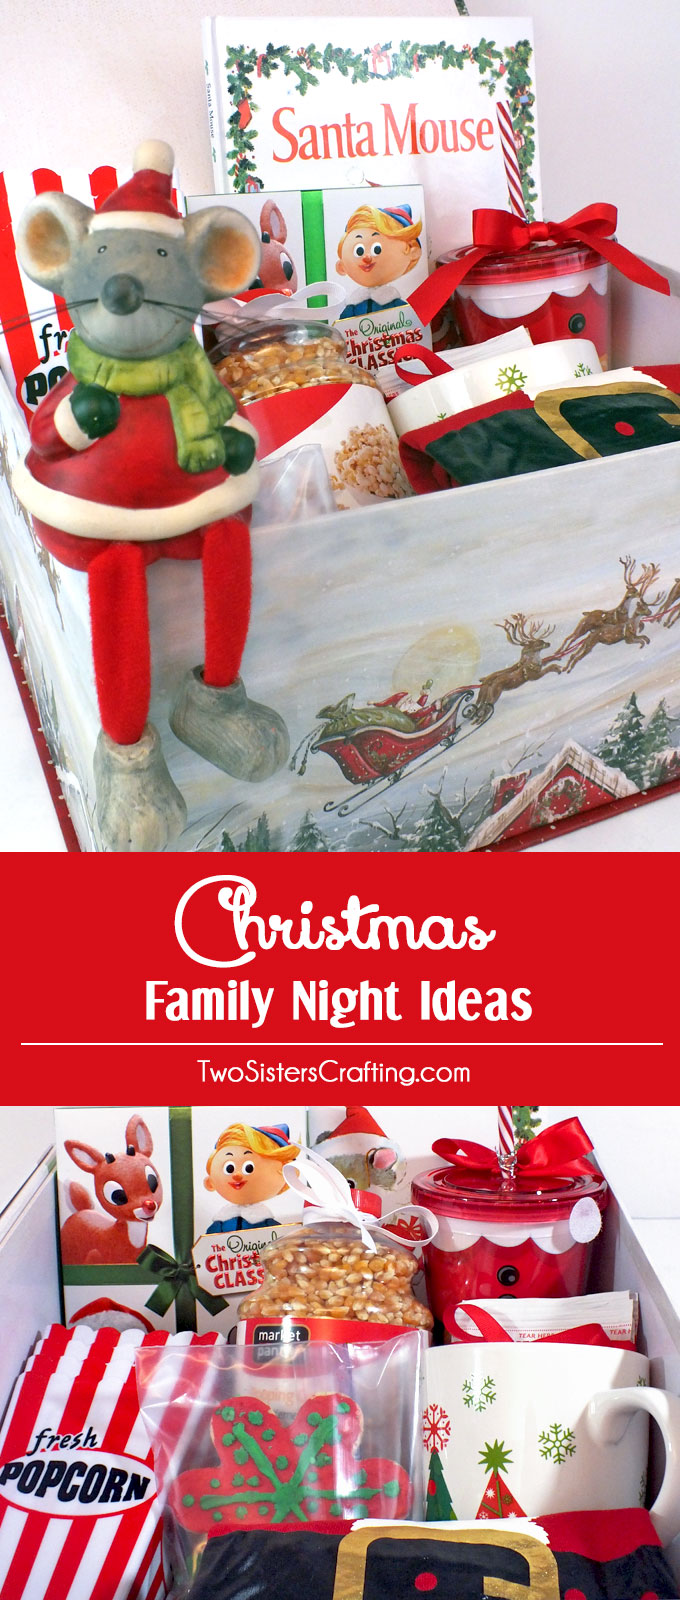 Christmas Family Night Ideas - Start a new Christmas Family Tradition with a Christmas Eve Eve Family Night filled with fun, popcorn, hot chocolate, Christmas movies and most importantly - love. Follow us for more fun Christmas Traditions.